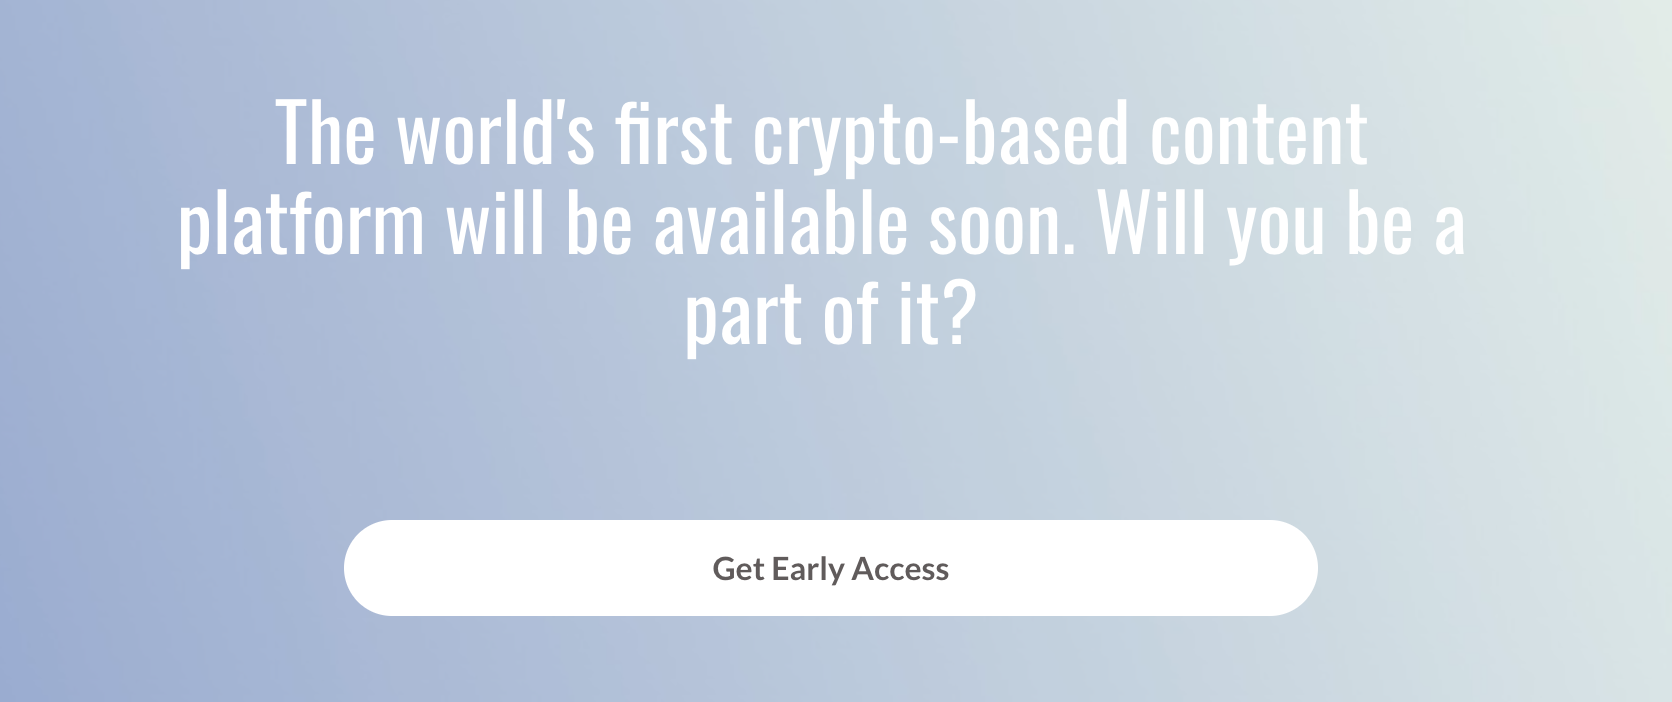 FansTray Set To Officially Launch As The First Crypto-based Content Platform